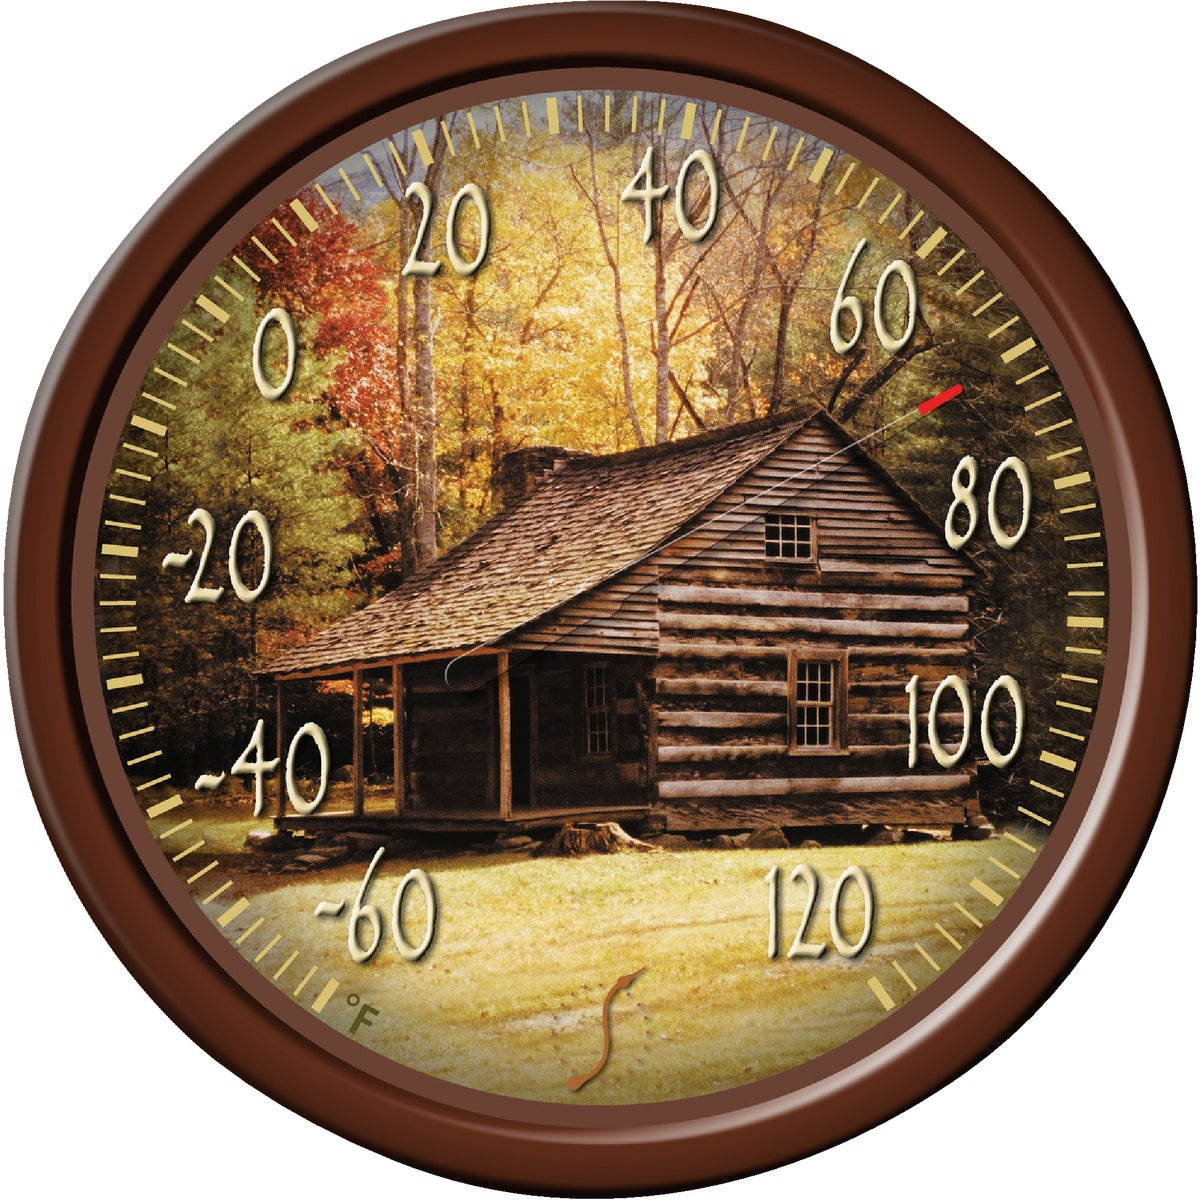 LODGE DIAL THERMOMETER - 90007-214 by Taylor Precision